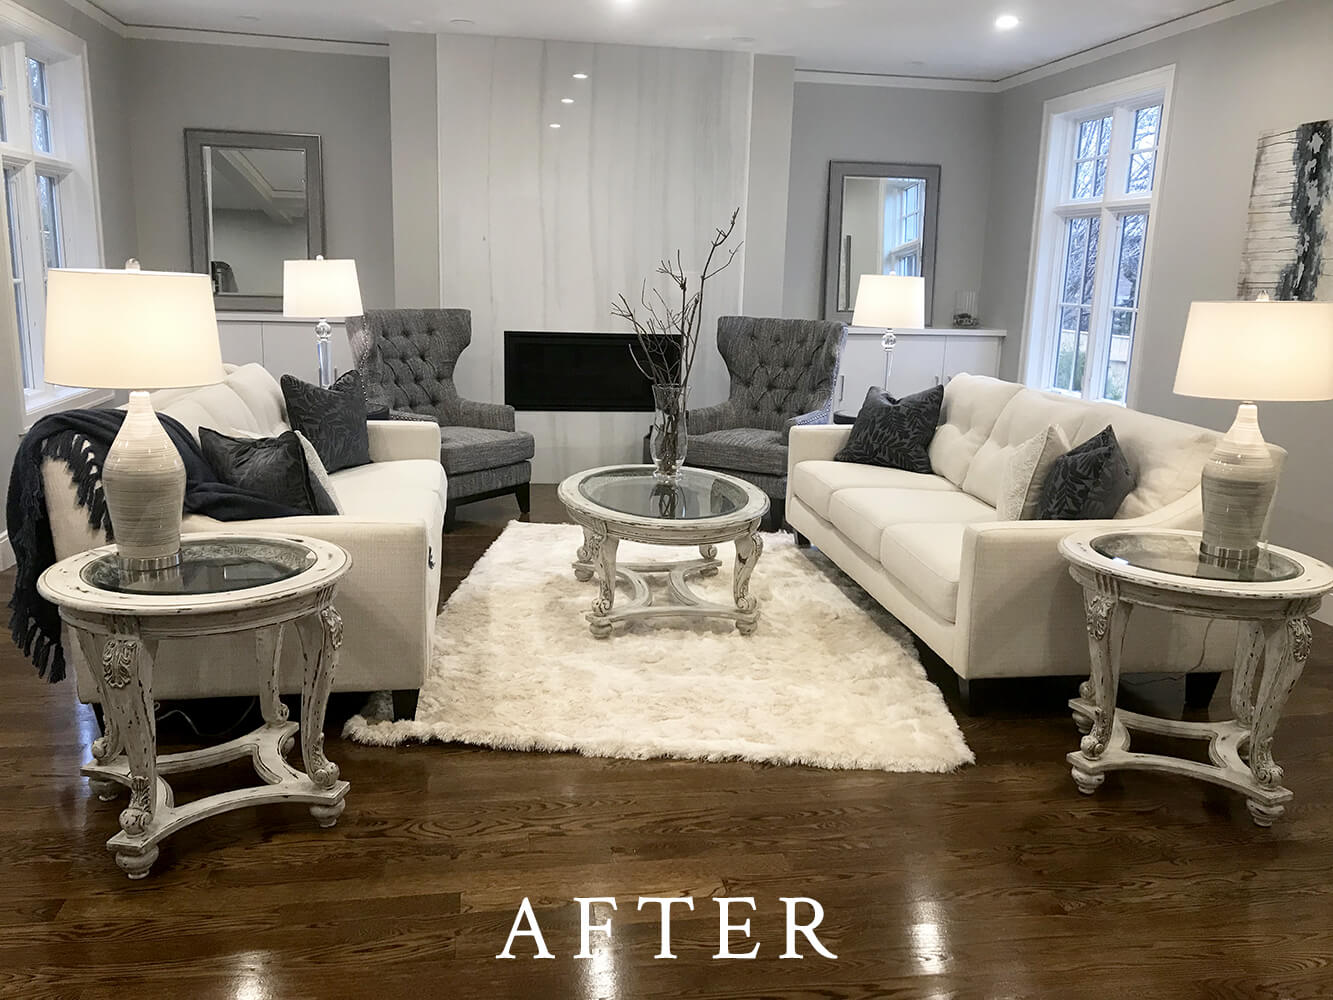 New Construction Staging - After